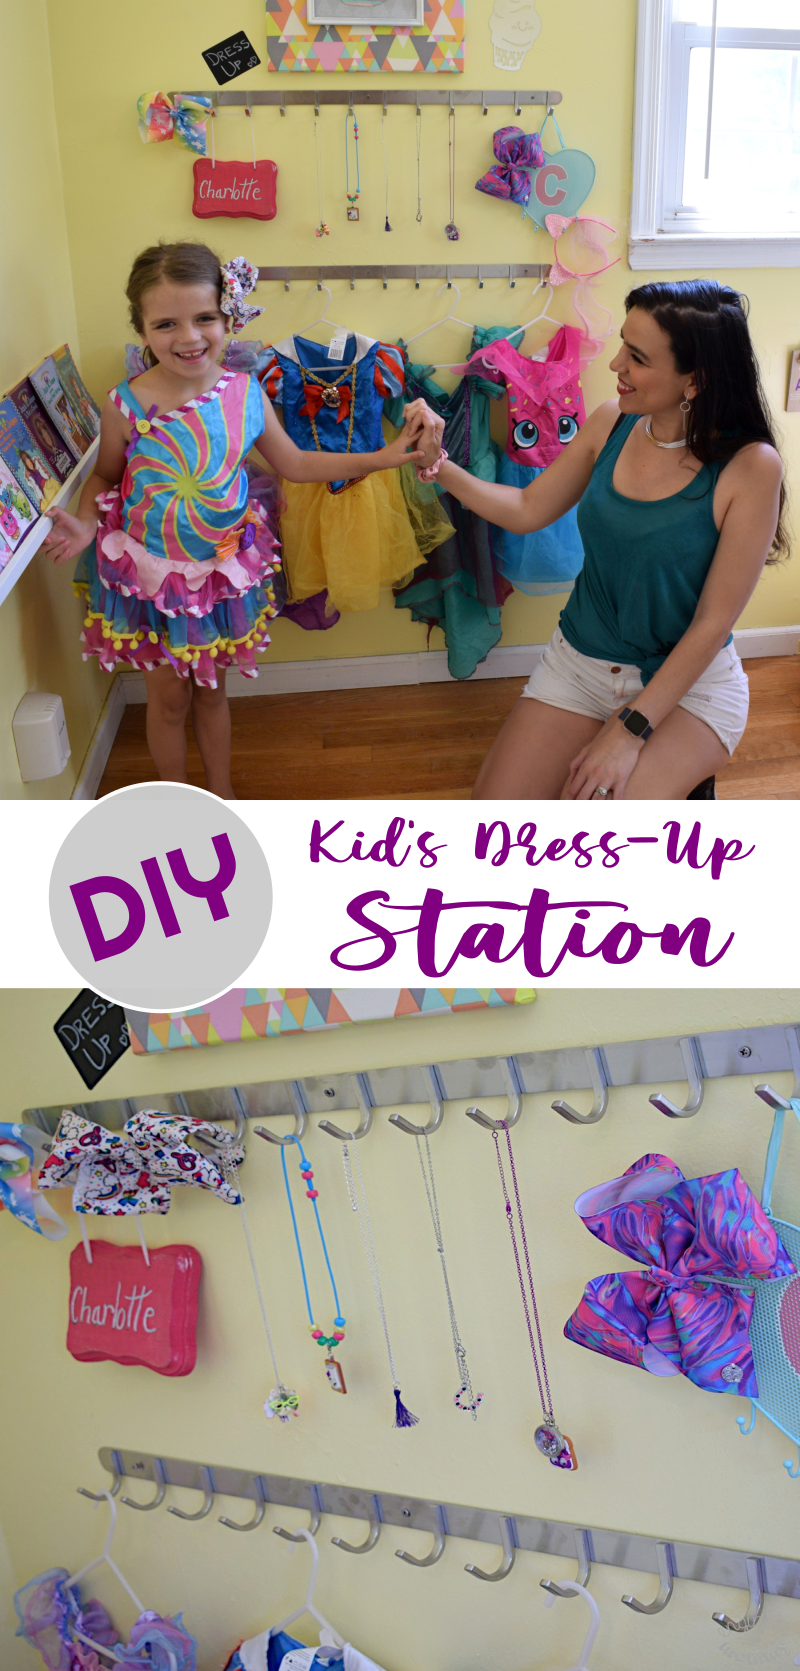 DIY Kid's Dress-Up Station